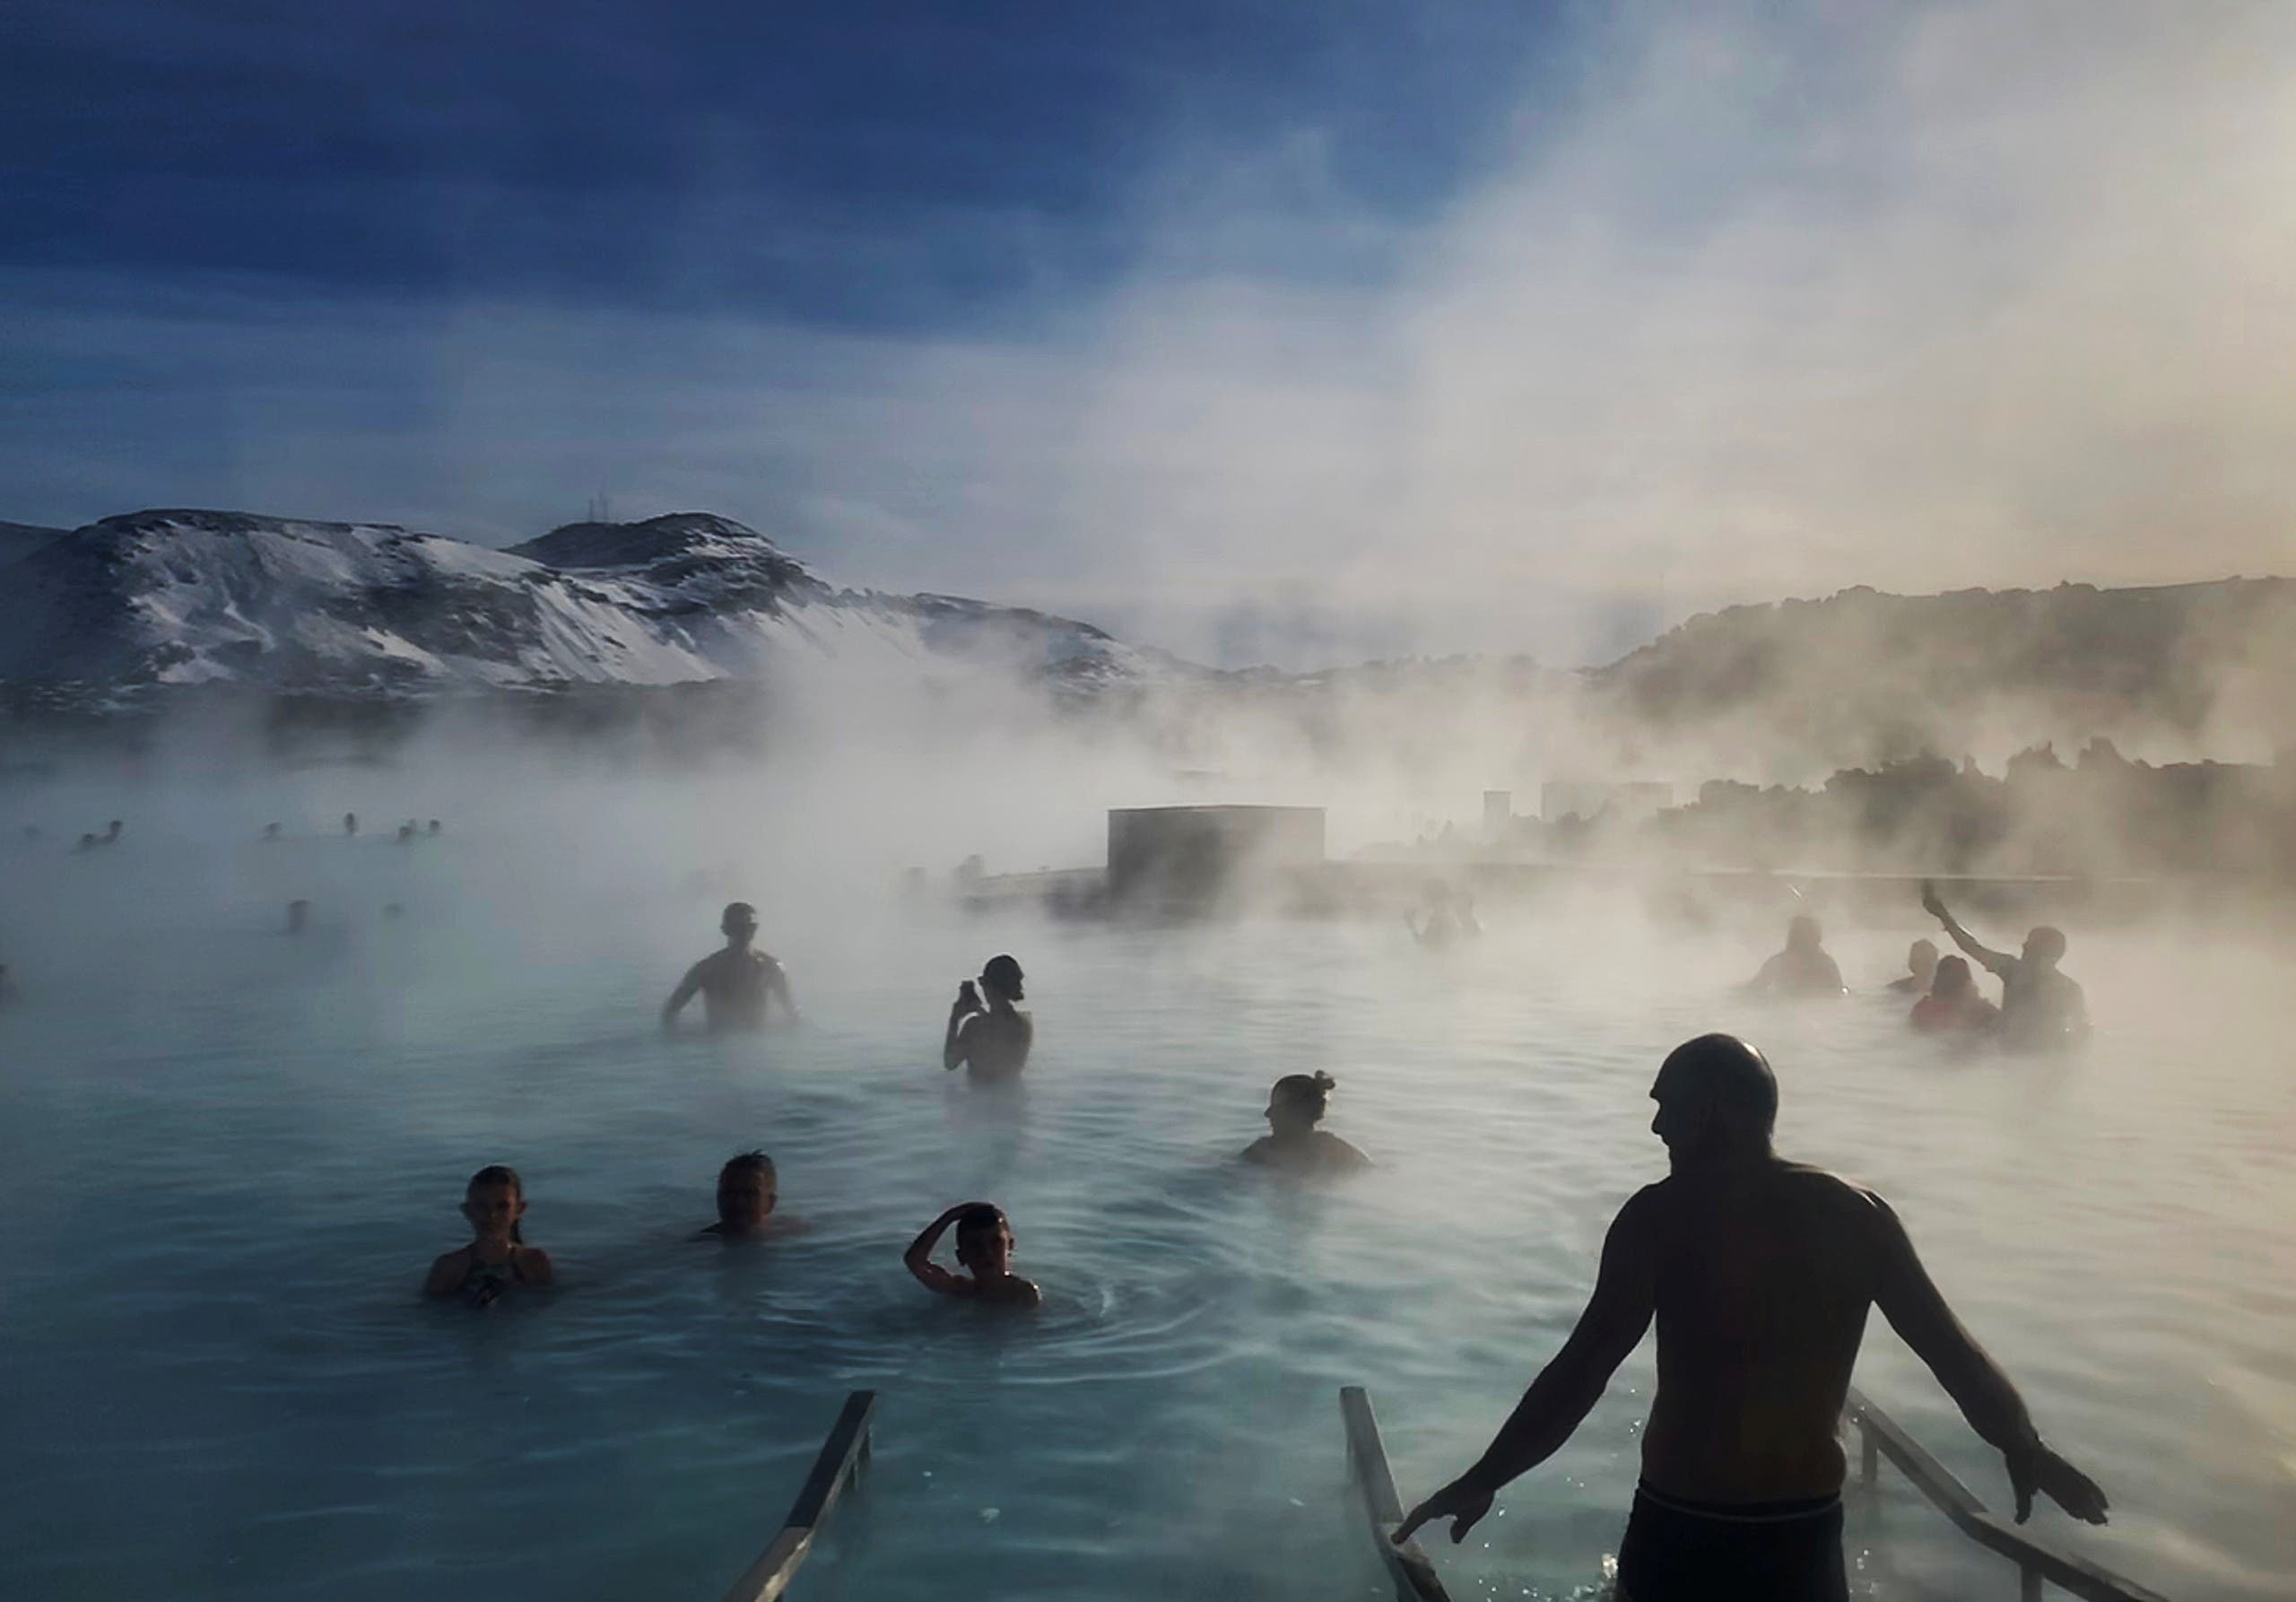 Bathers enjoy the warm volcanic hot springs of the Blue Lagoon in Grindavik, Iceland, March 6, 2020. (Reuters)